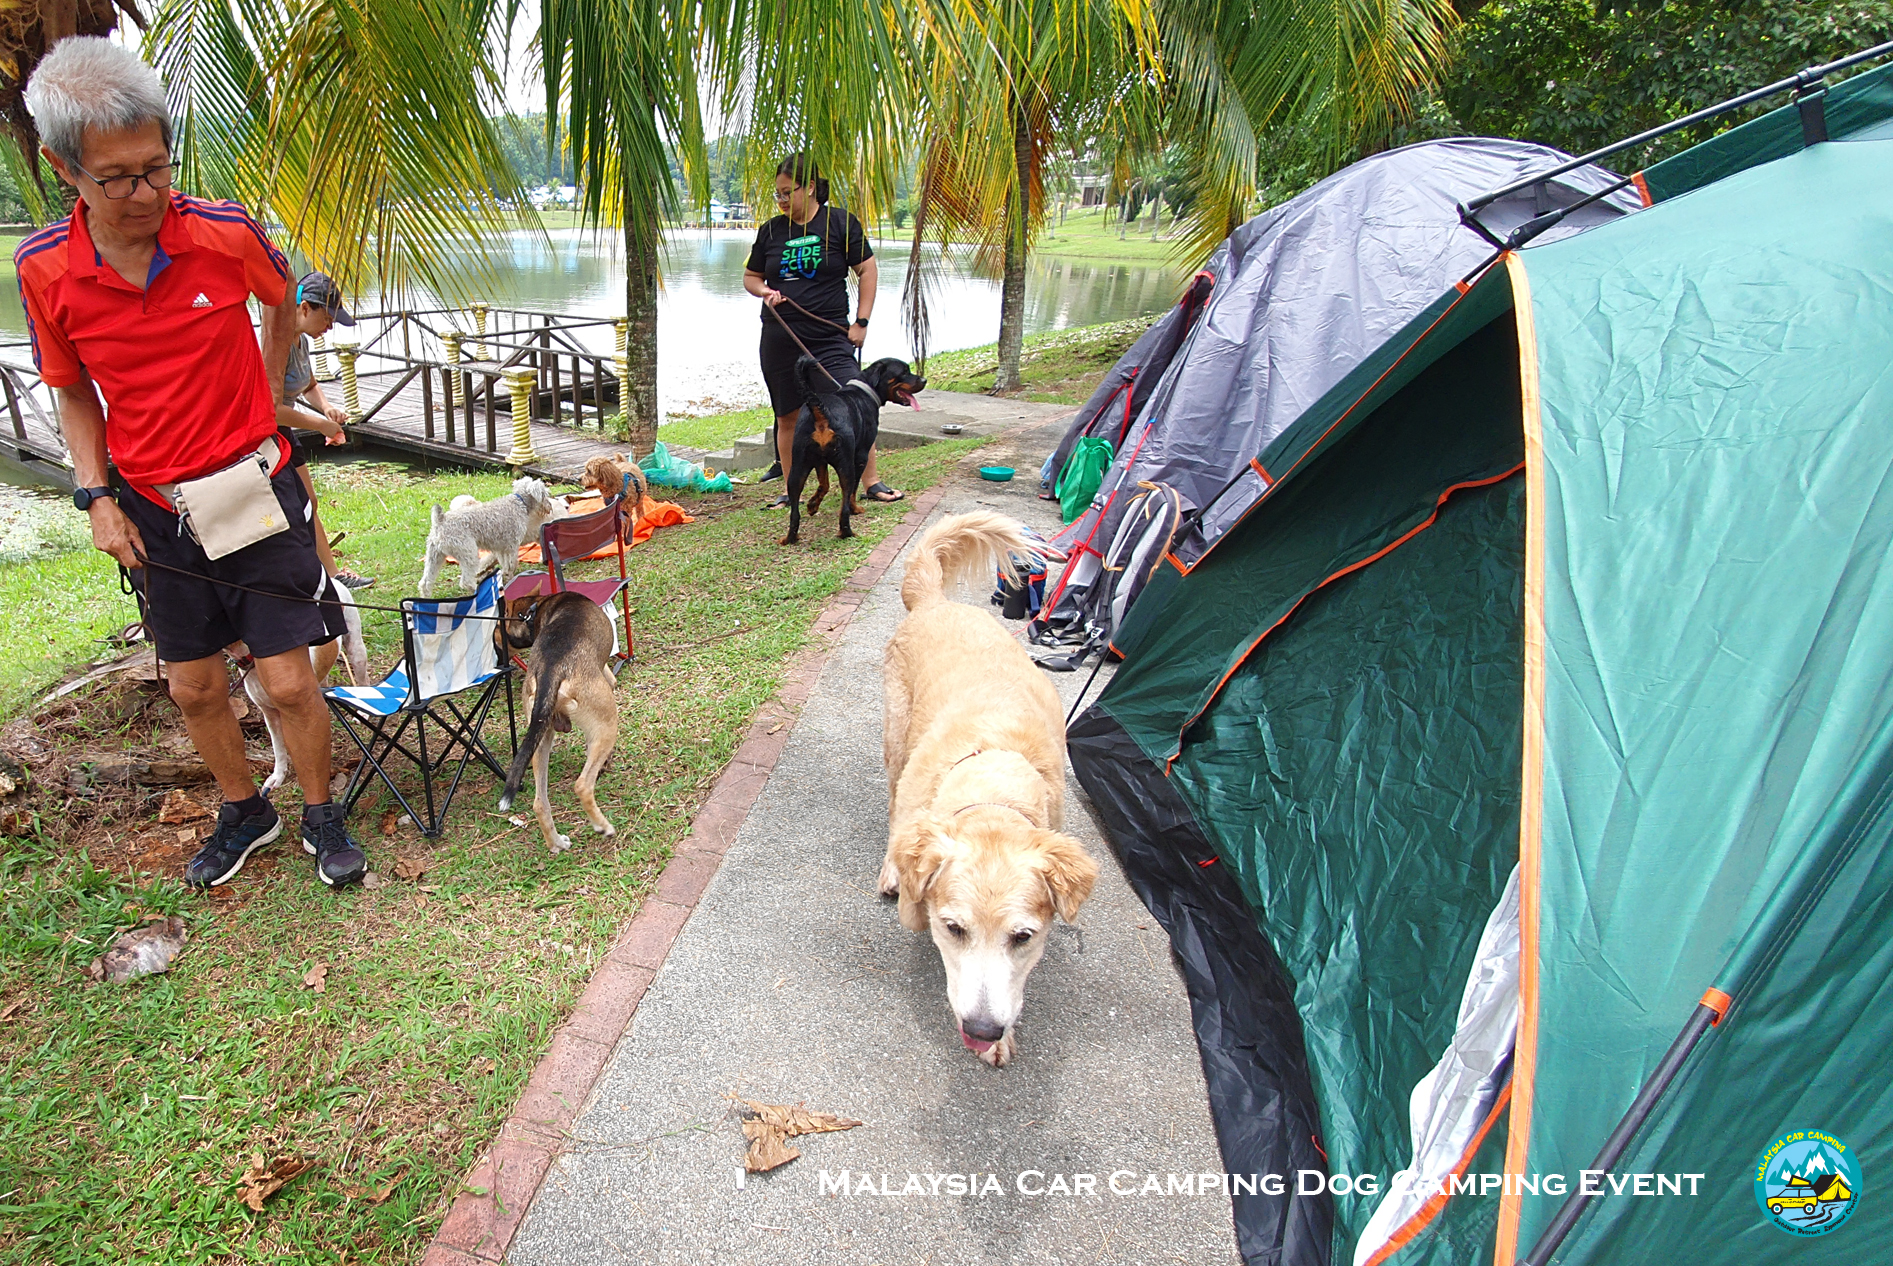 dog_camping_event_dog_lover_selangor_camping_site_malaysia_car_camping_private_event_organizer-7